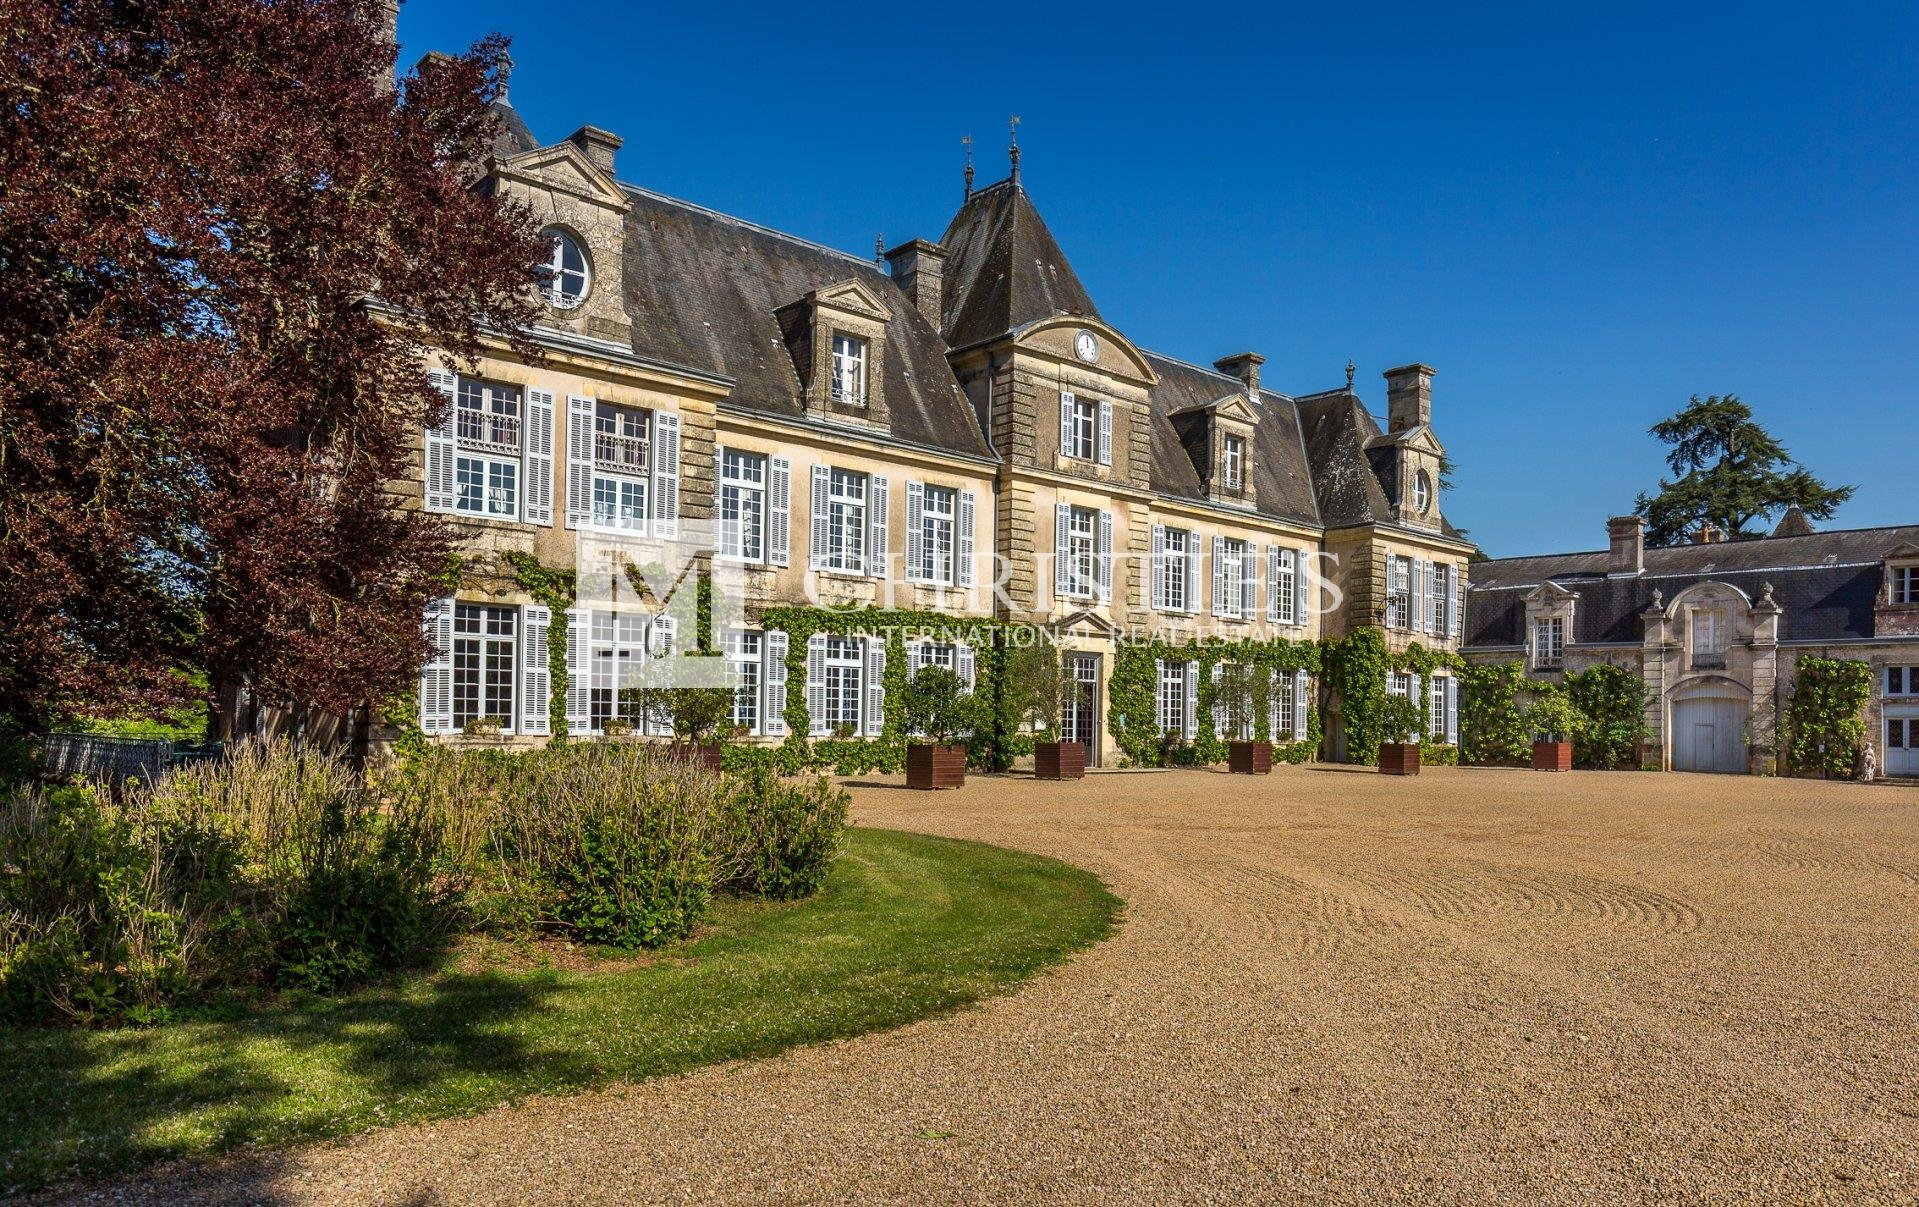 Large chateau with brown gravel driveway